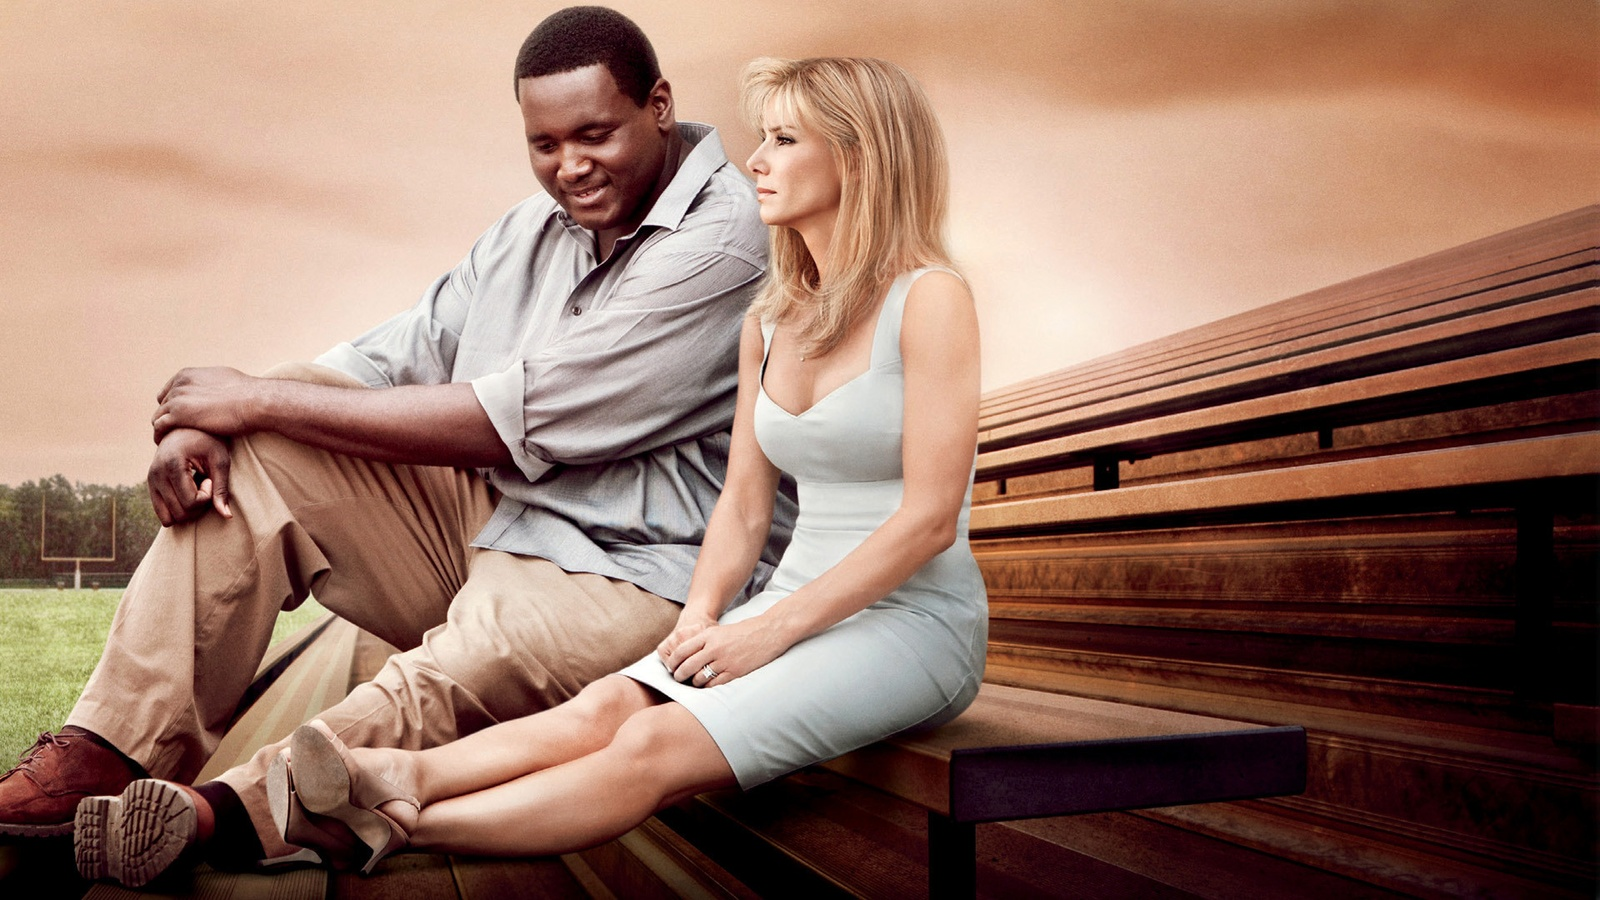 the theme of class differences in the pg 13 movie the blind side directed by john lee hancock The blind side - john lee hancock's film, the blind side, is an absolutely must see the blind side, is a semi biographical movie that is based on the life of a football player named michael oher.